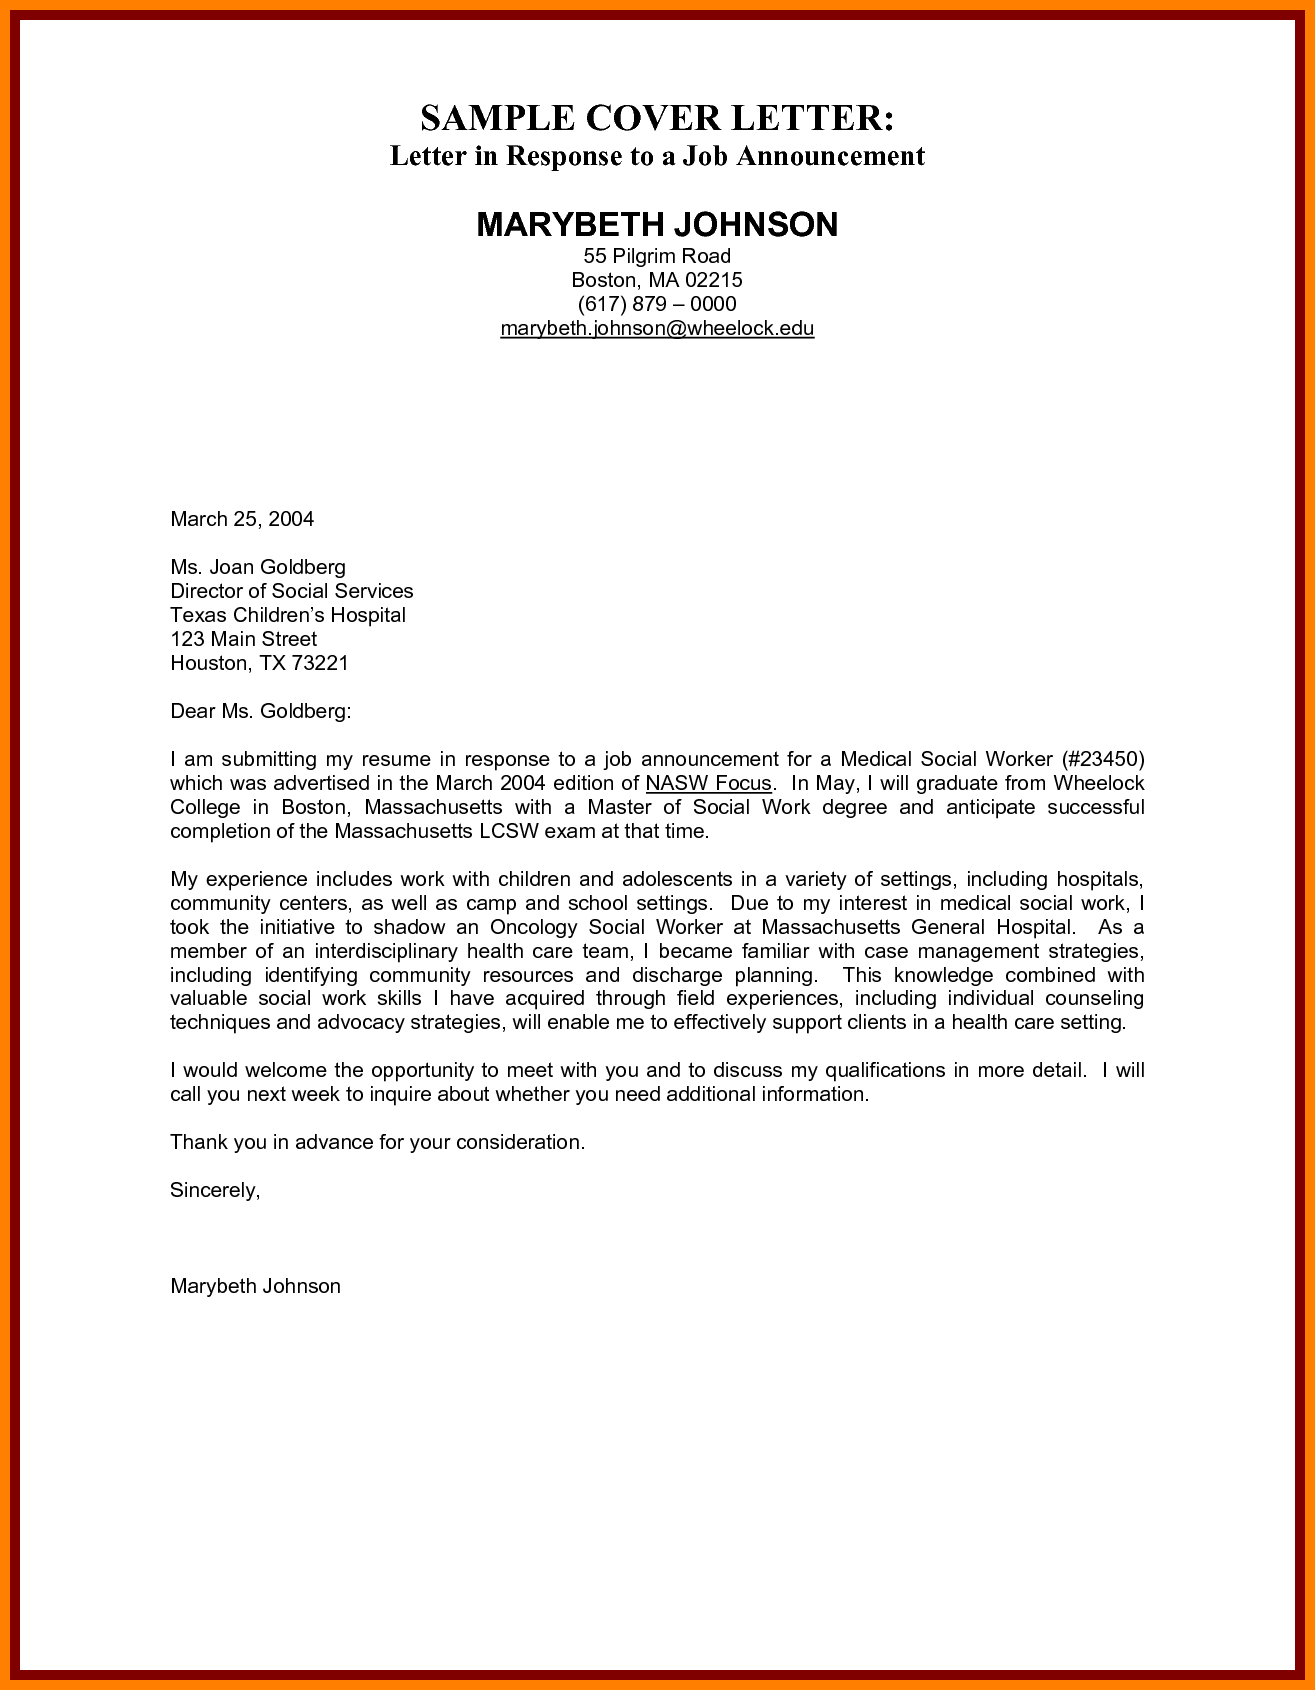 30 best of sample cover letter for human services job pics wbxo us